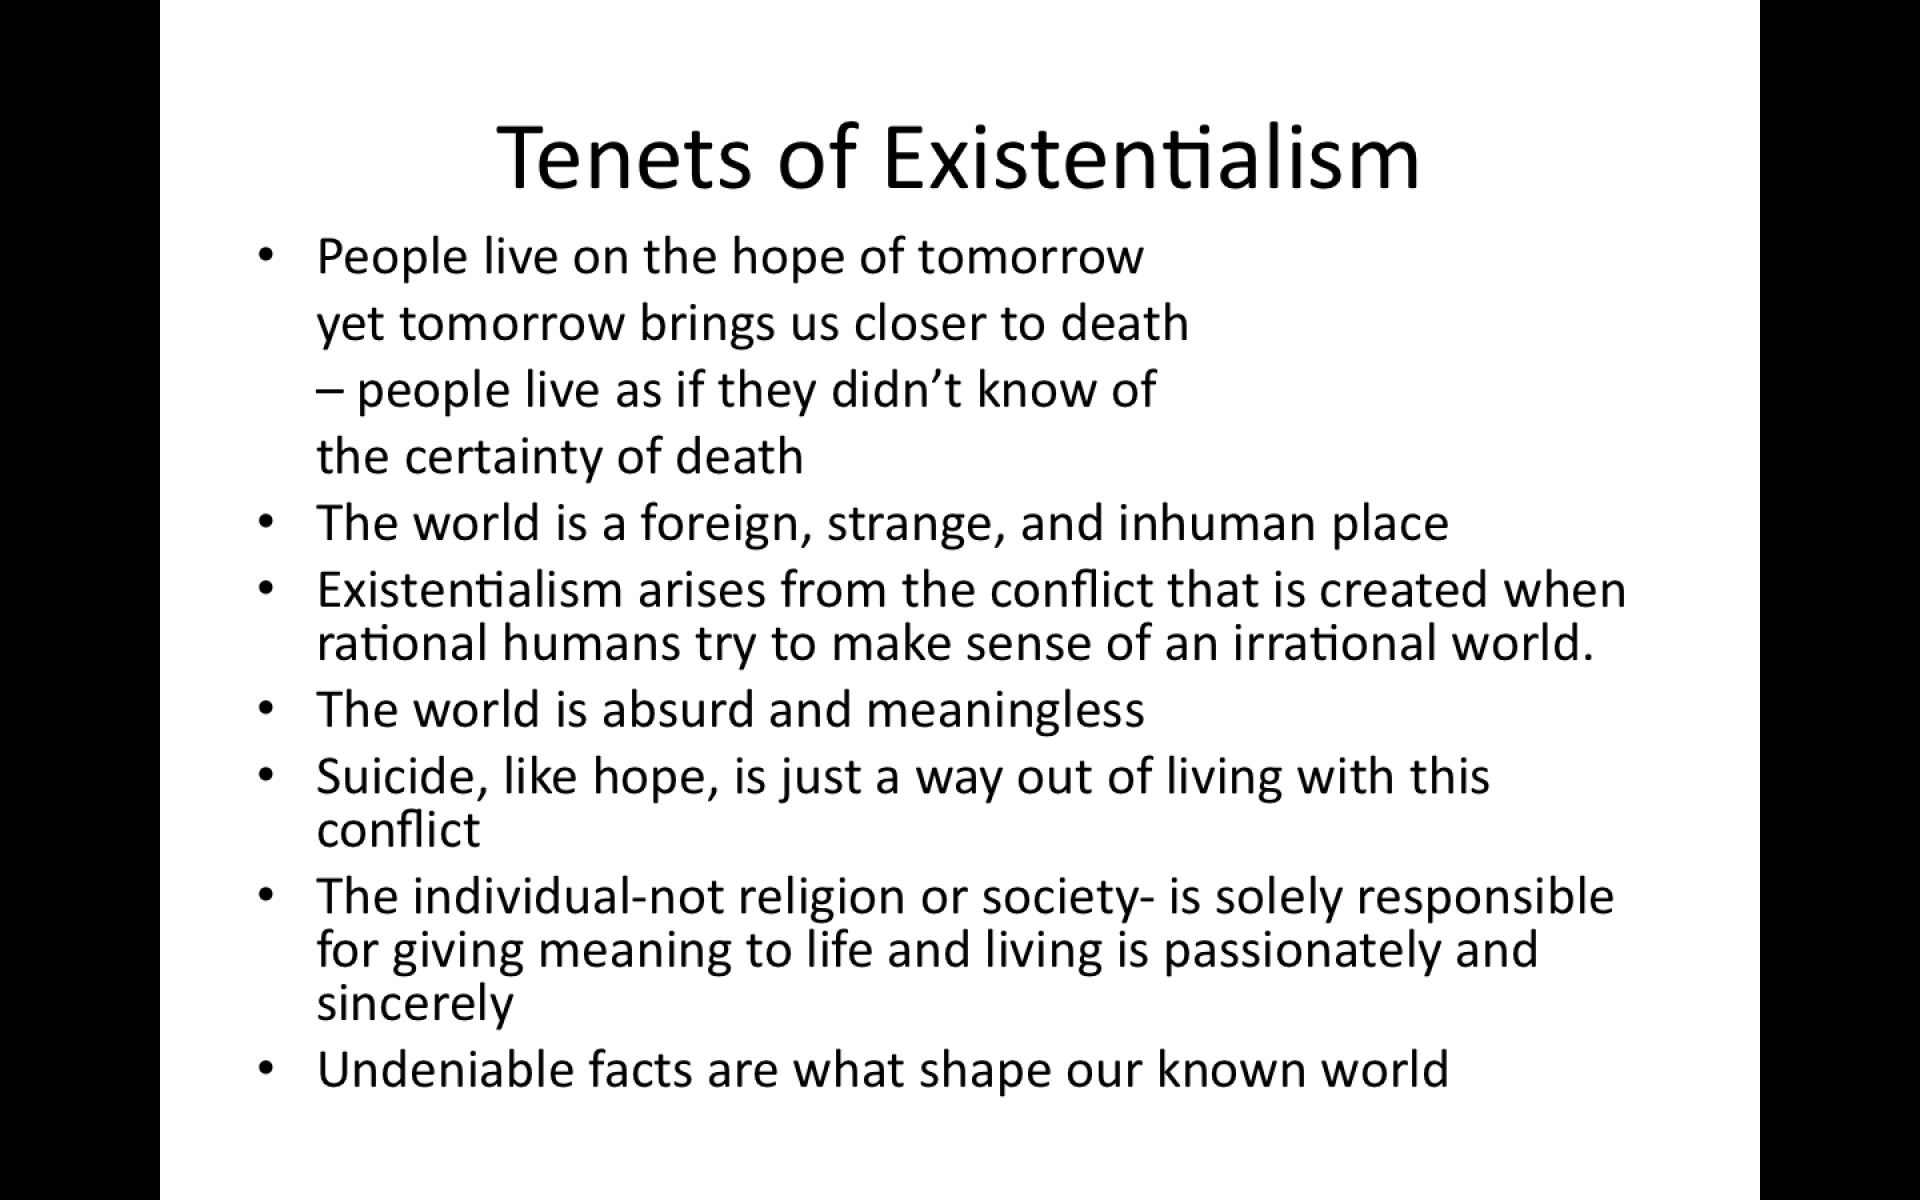 004 Essays In Existentialism Essay Example Tenets Of Outstanding Pdf Sartre 1920